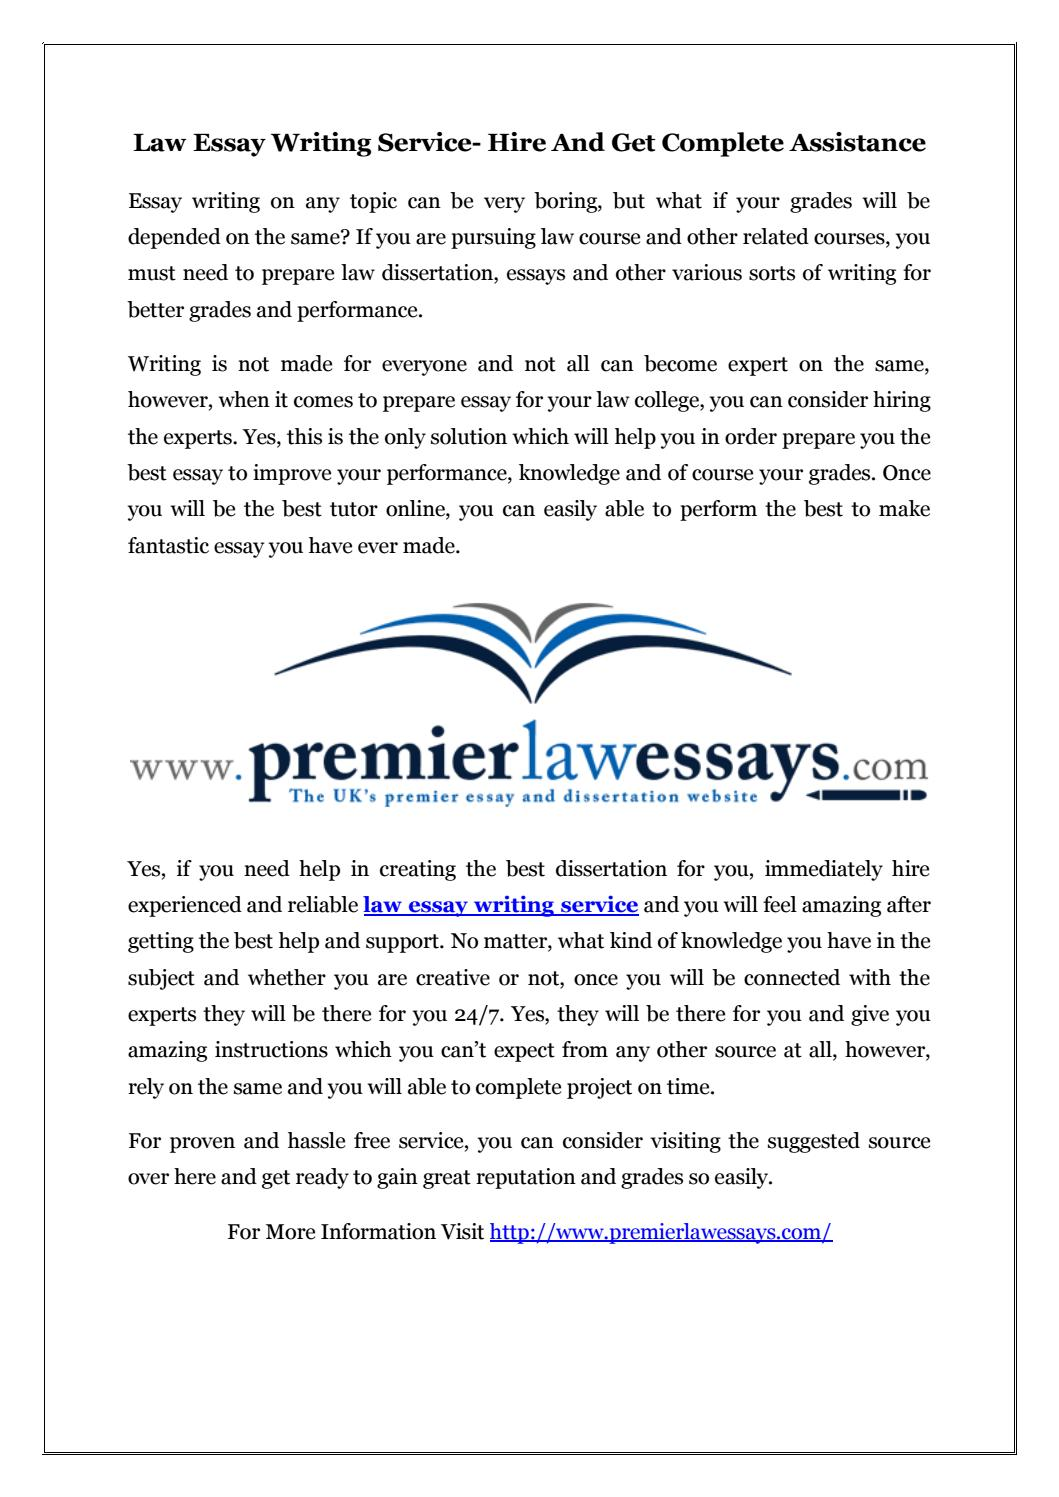 Law essay writing service fastest